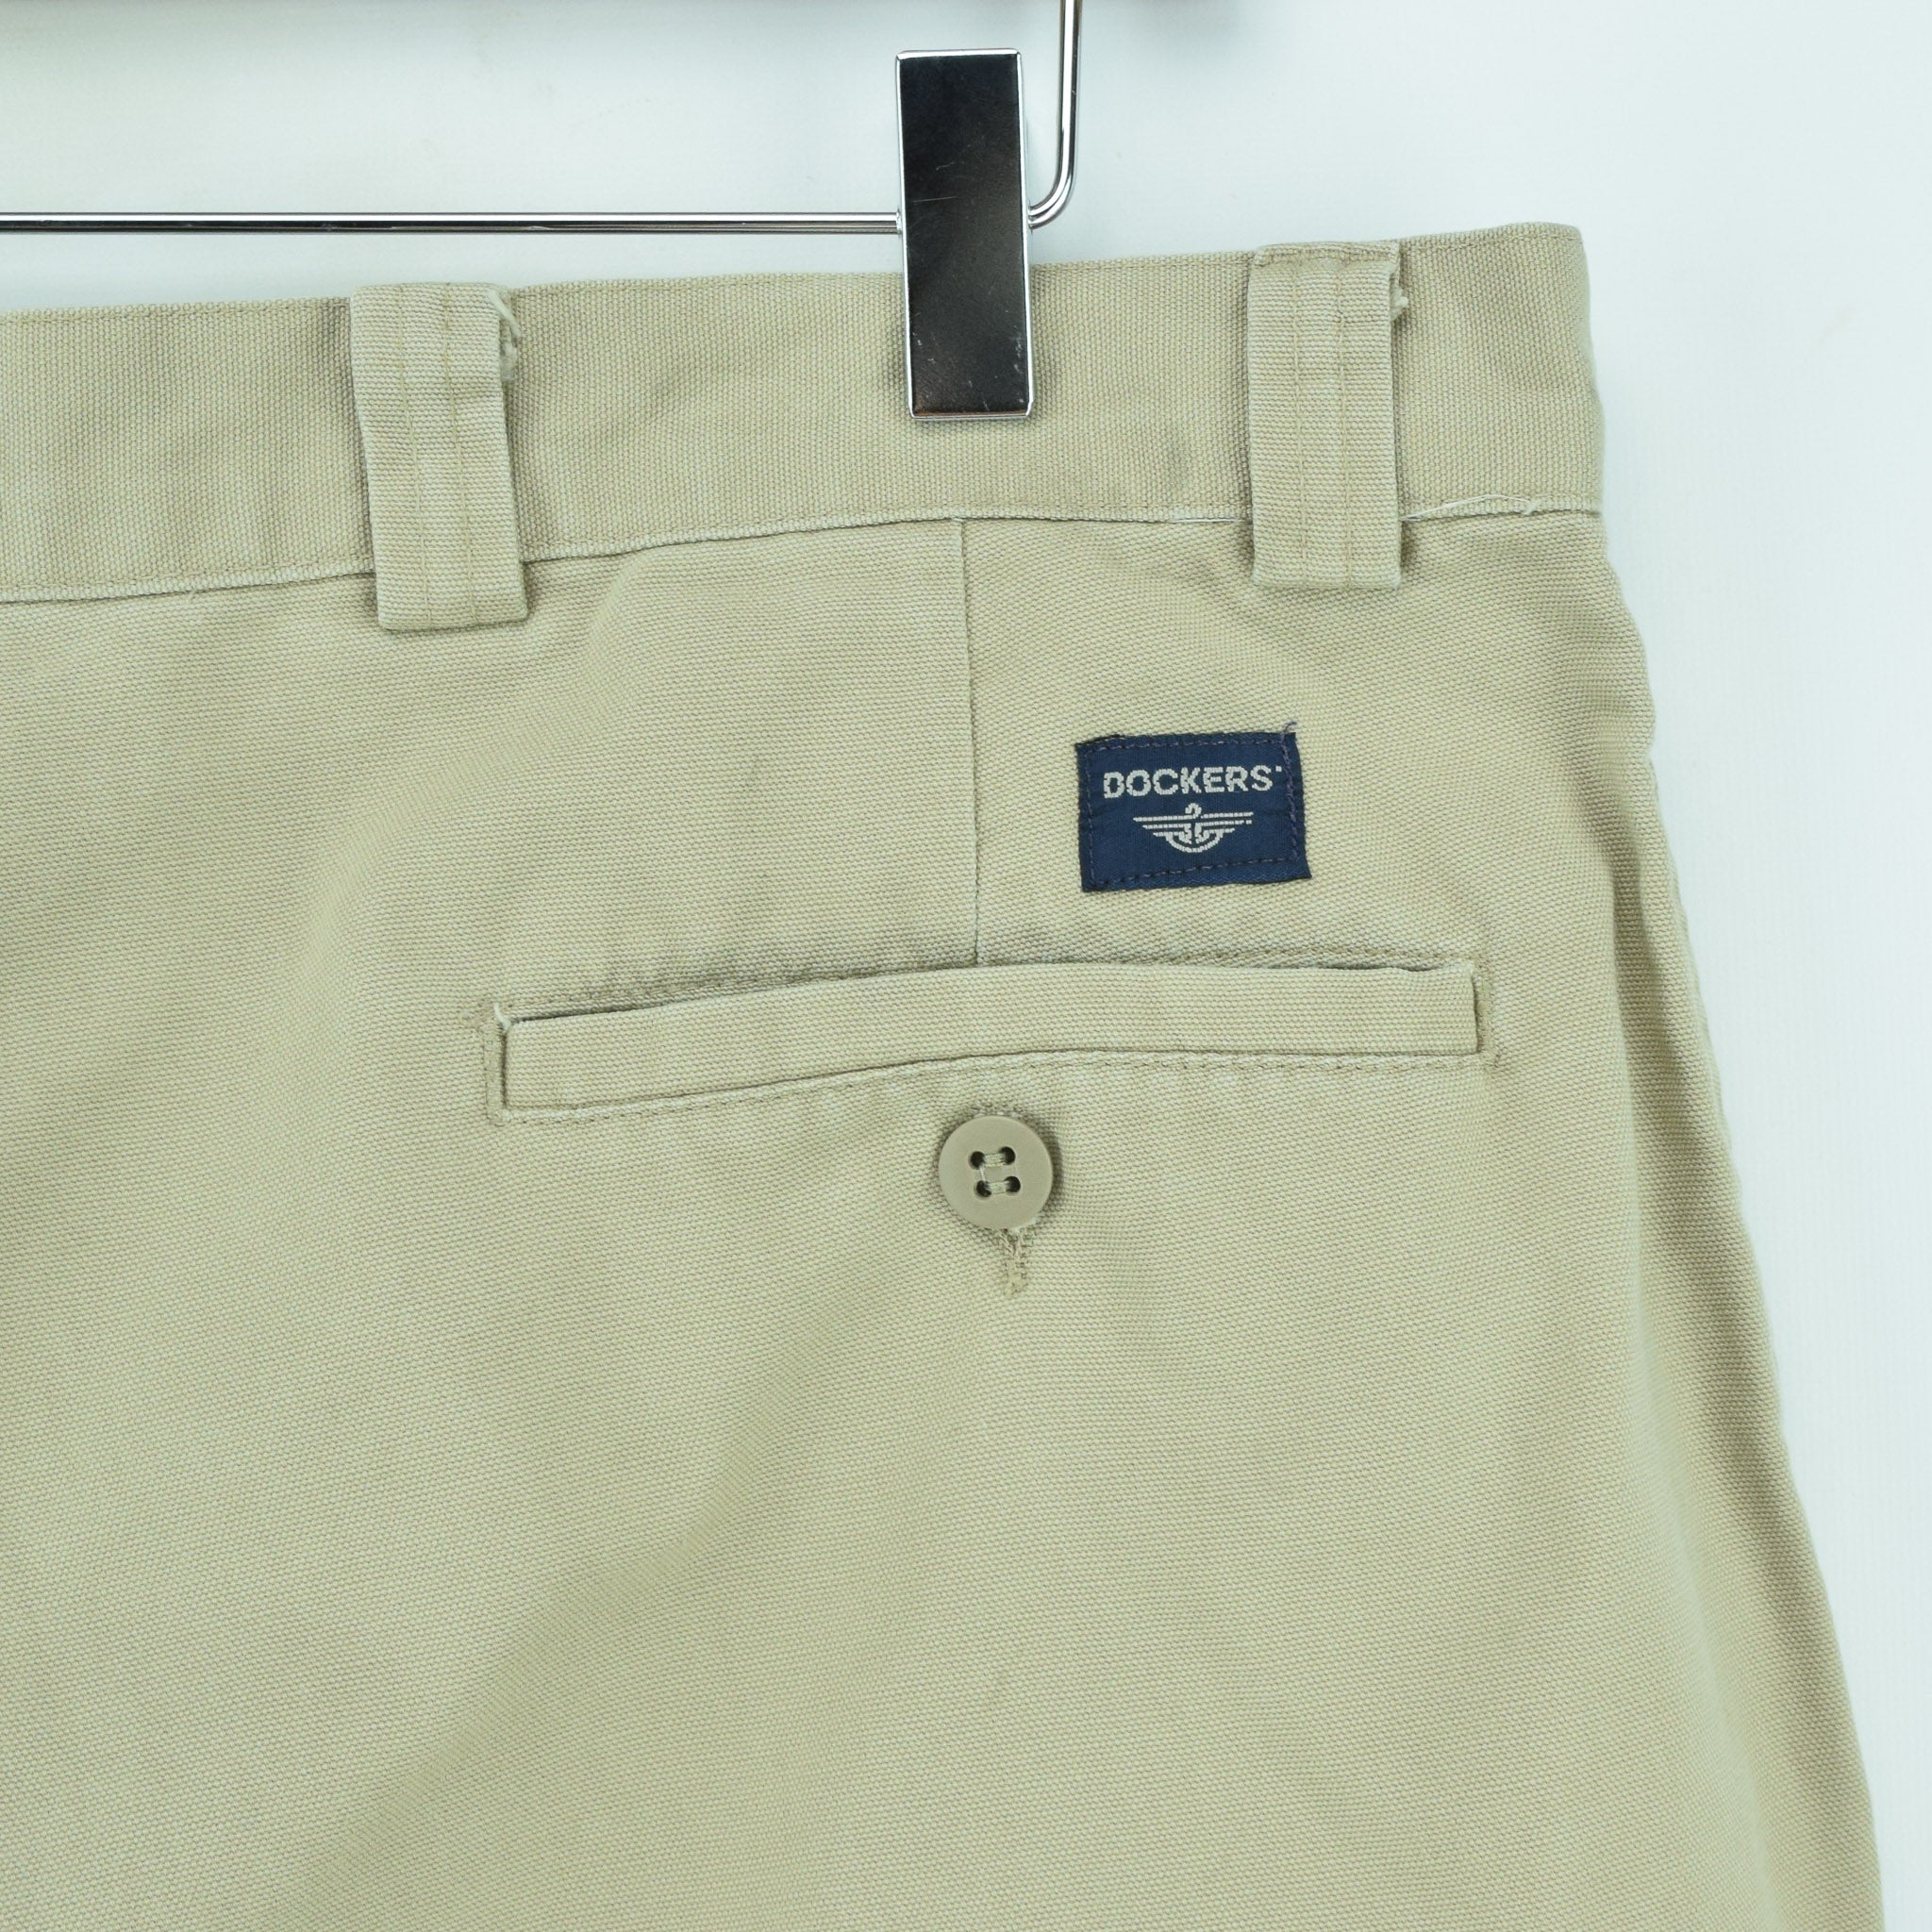 Vintage Dockers Chinos Stone Pants Flat Front Trousers 34 W 29 L pocket